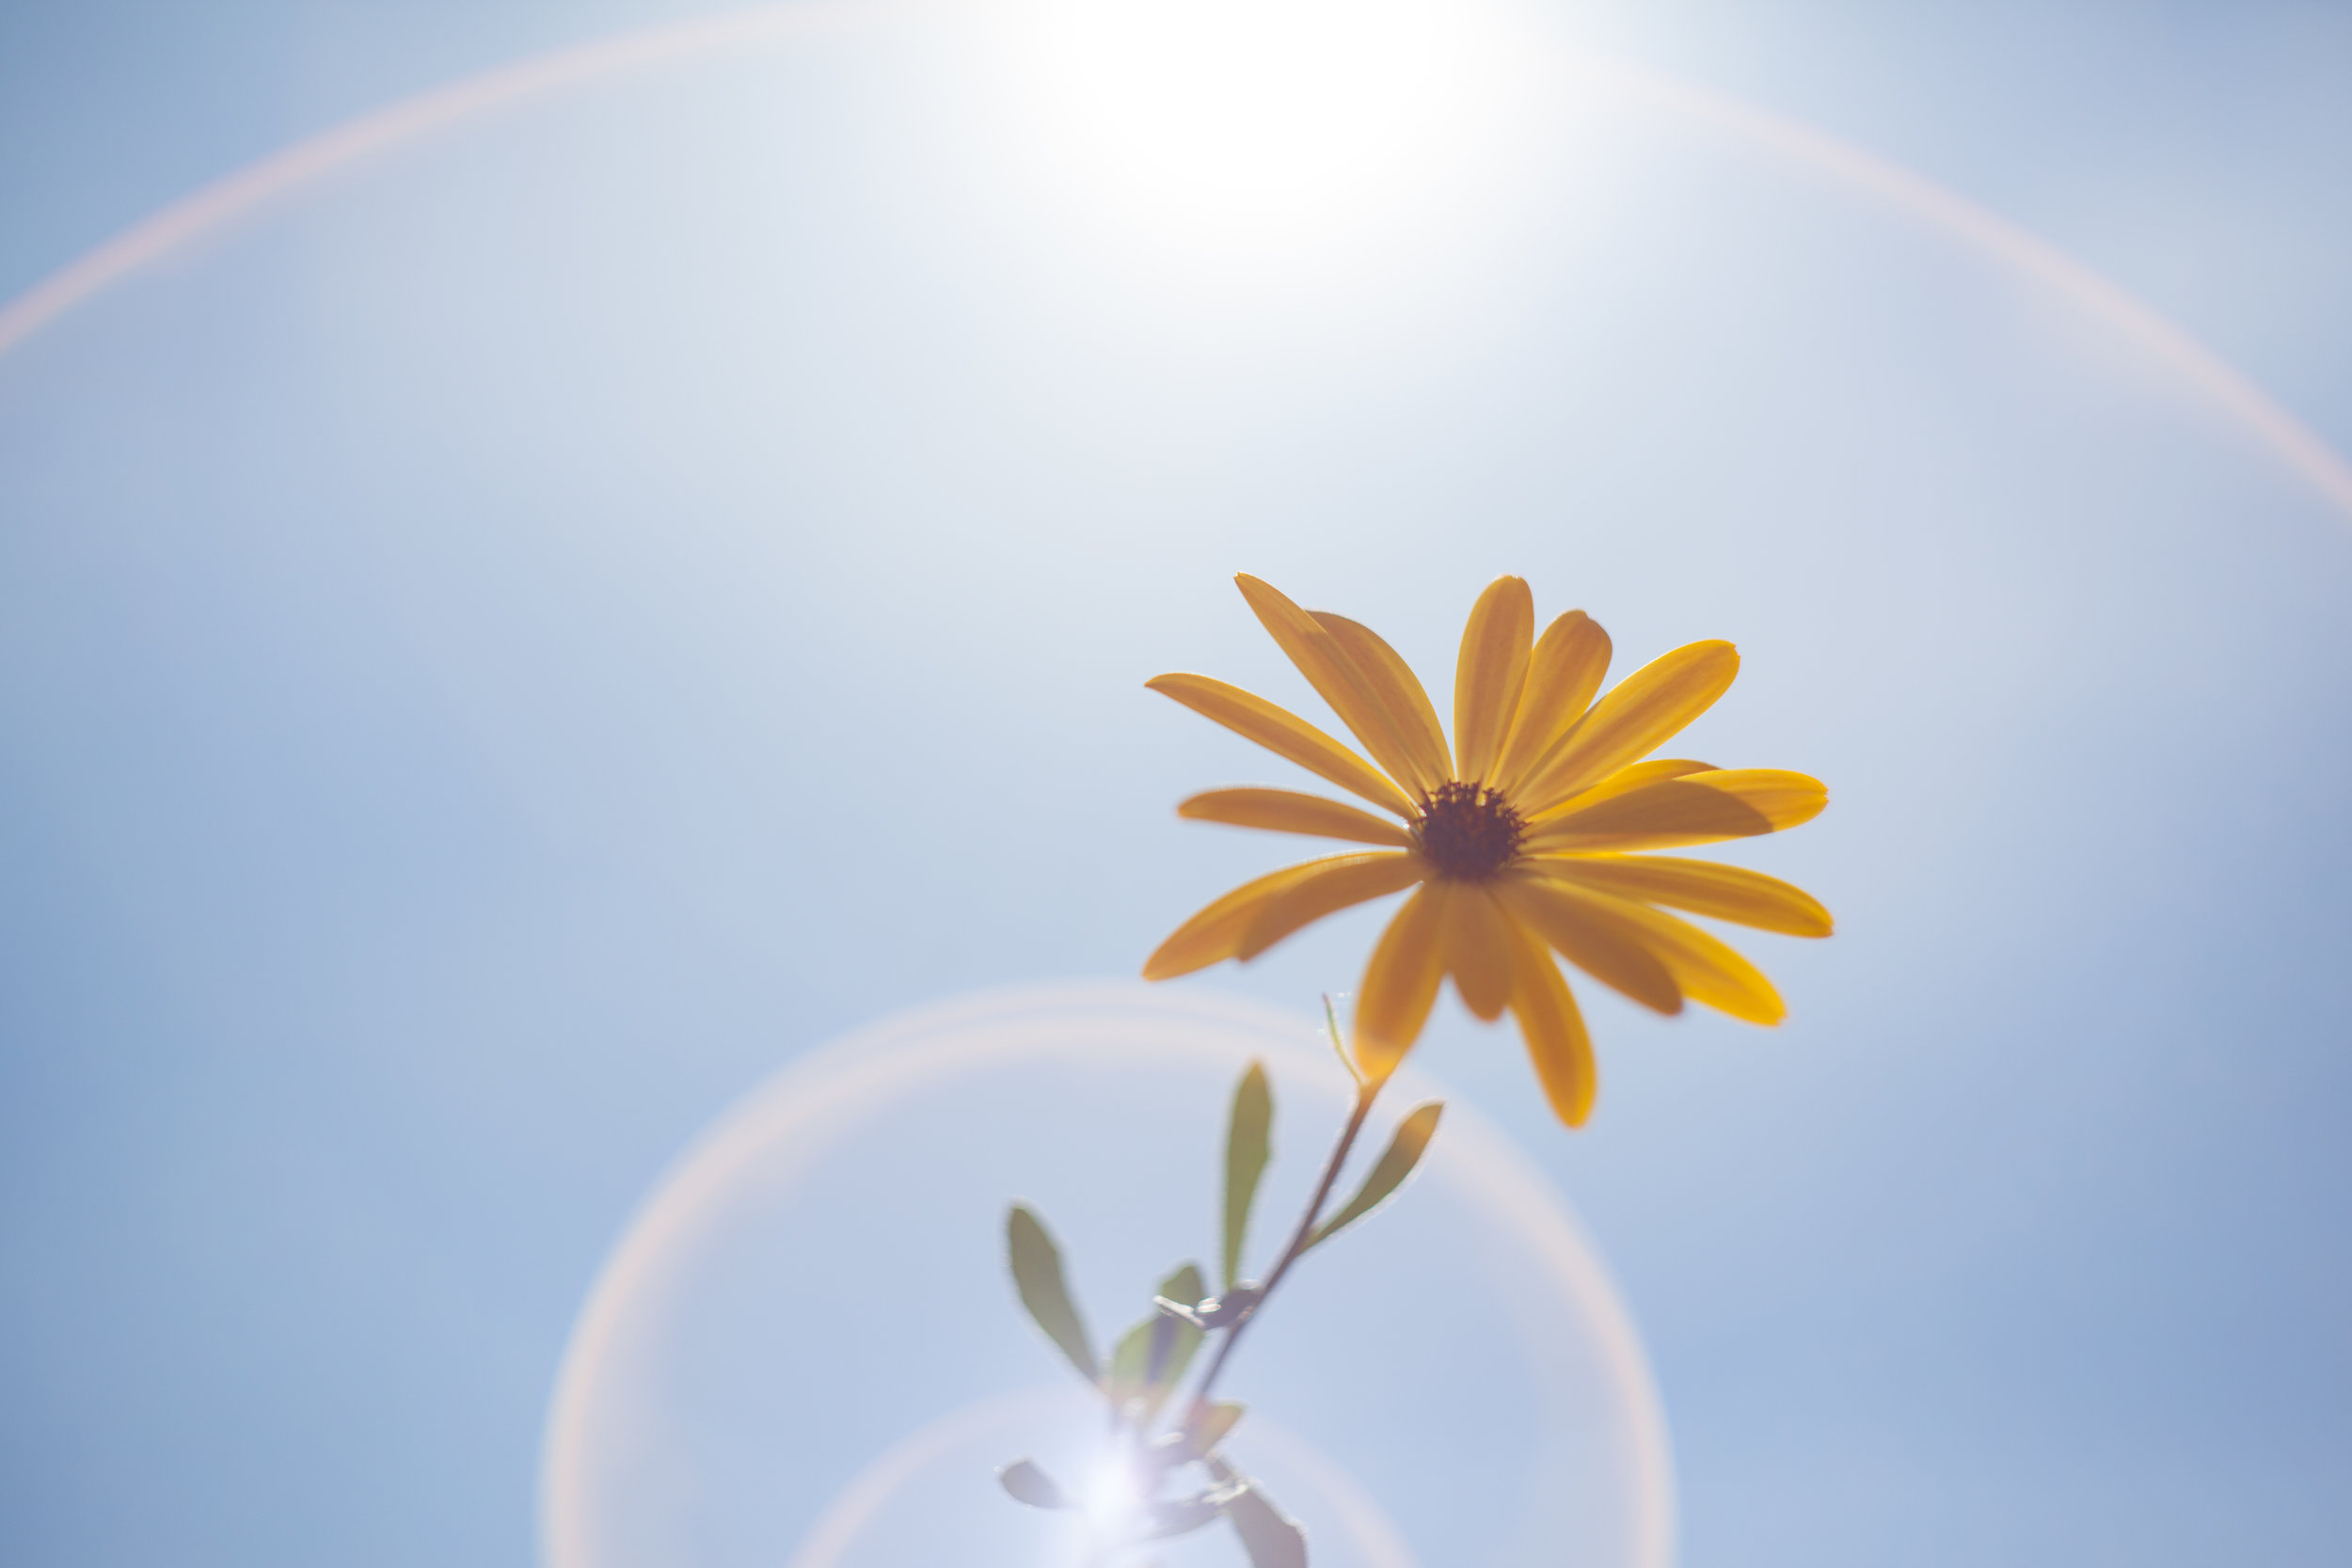 Negative space and flare add elements to the composition of this flower in the summer.